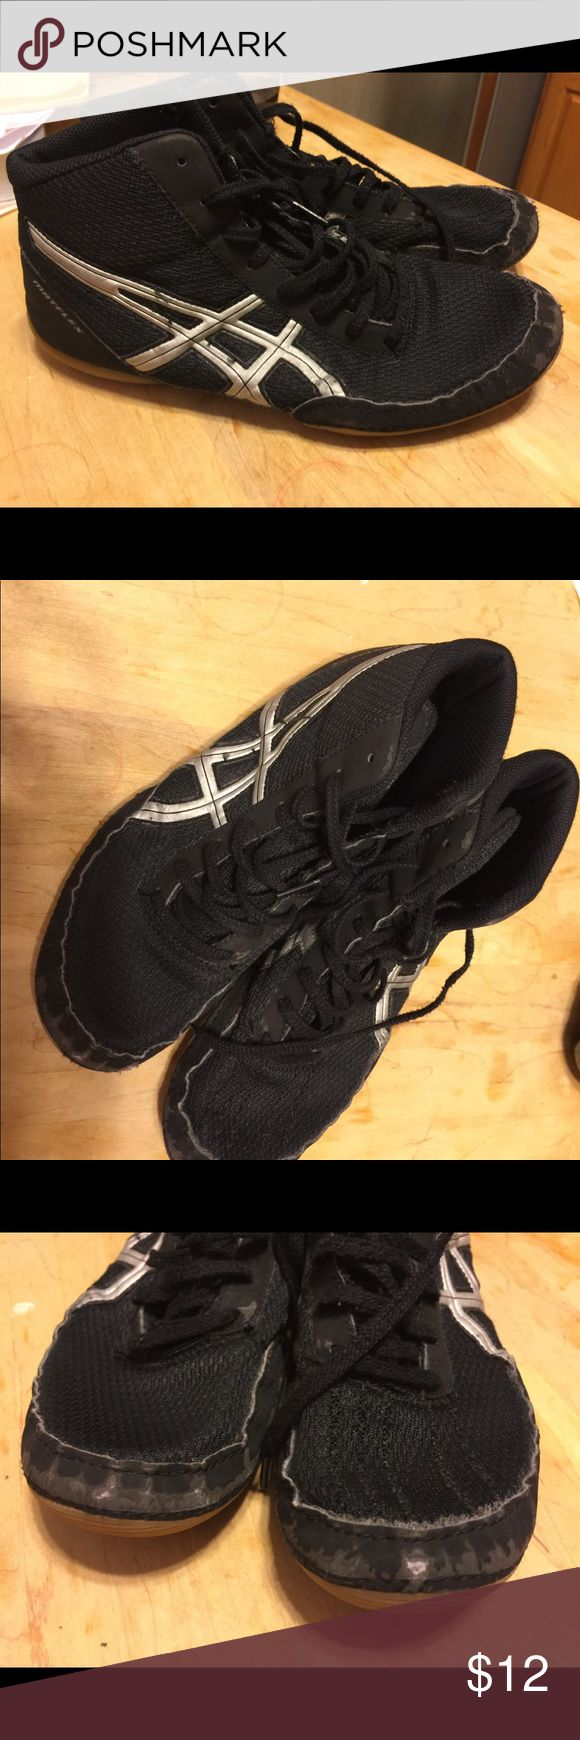 Asics Matflex Wrestling Shoes 8 Black asics Matflex wrestling shoes, men's size 8. Only worn on the mat one season. Toes have some wear as seen in the pix. Soles show no wear. Good condition overall. Asics Shoes Athletic Shoes